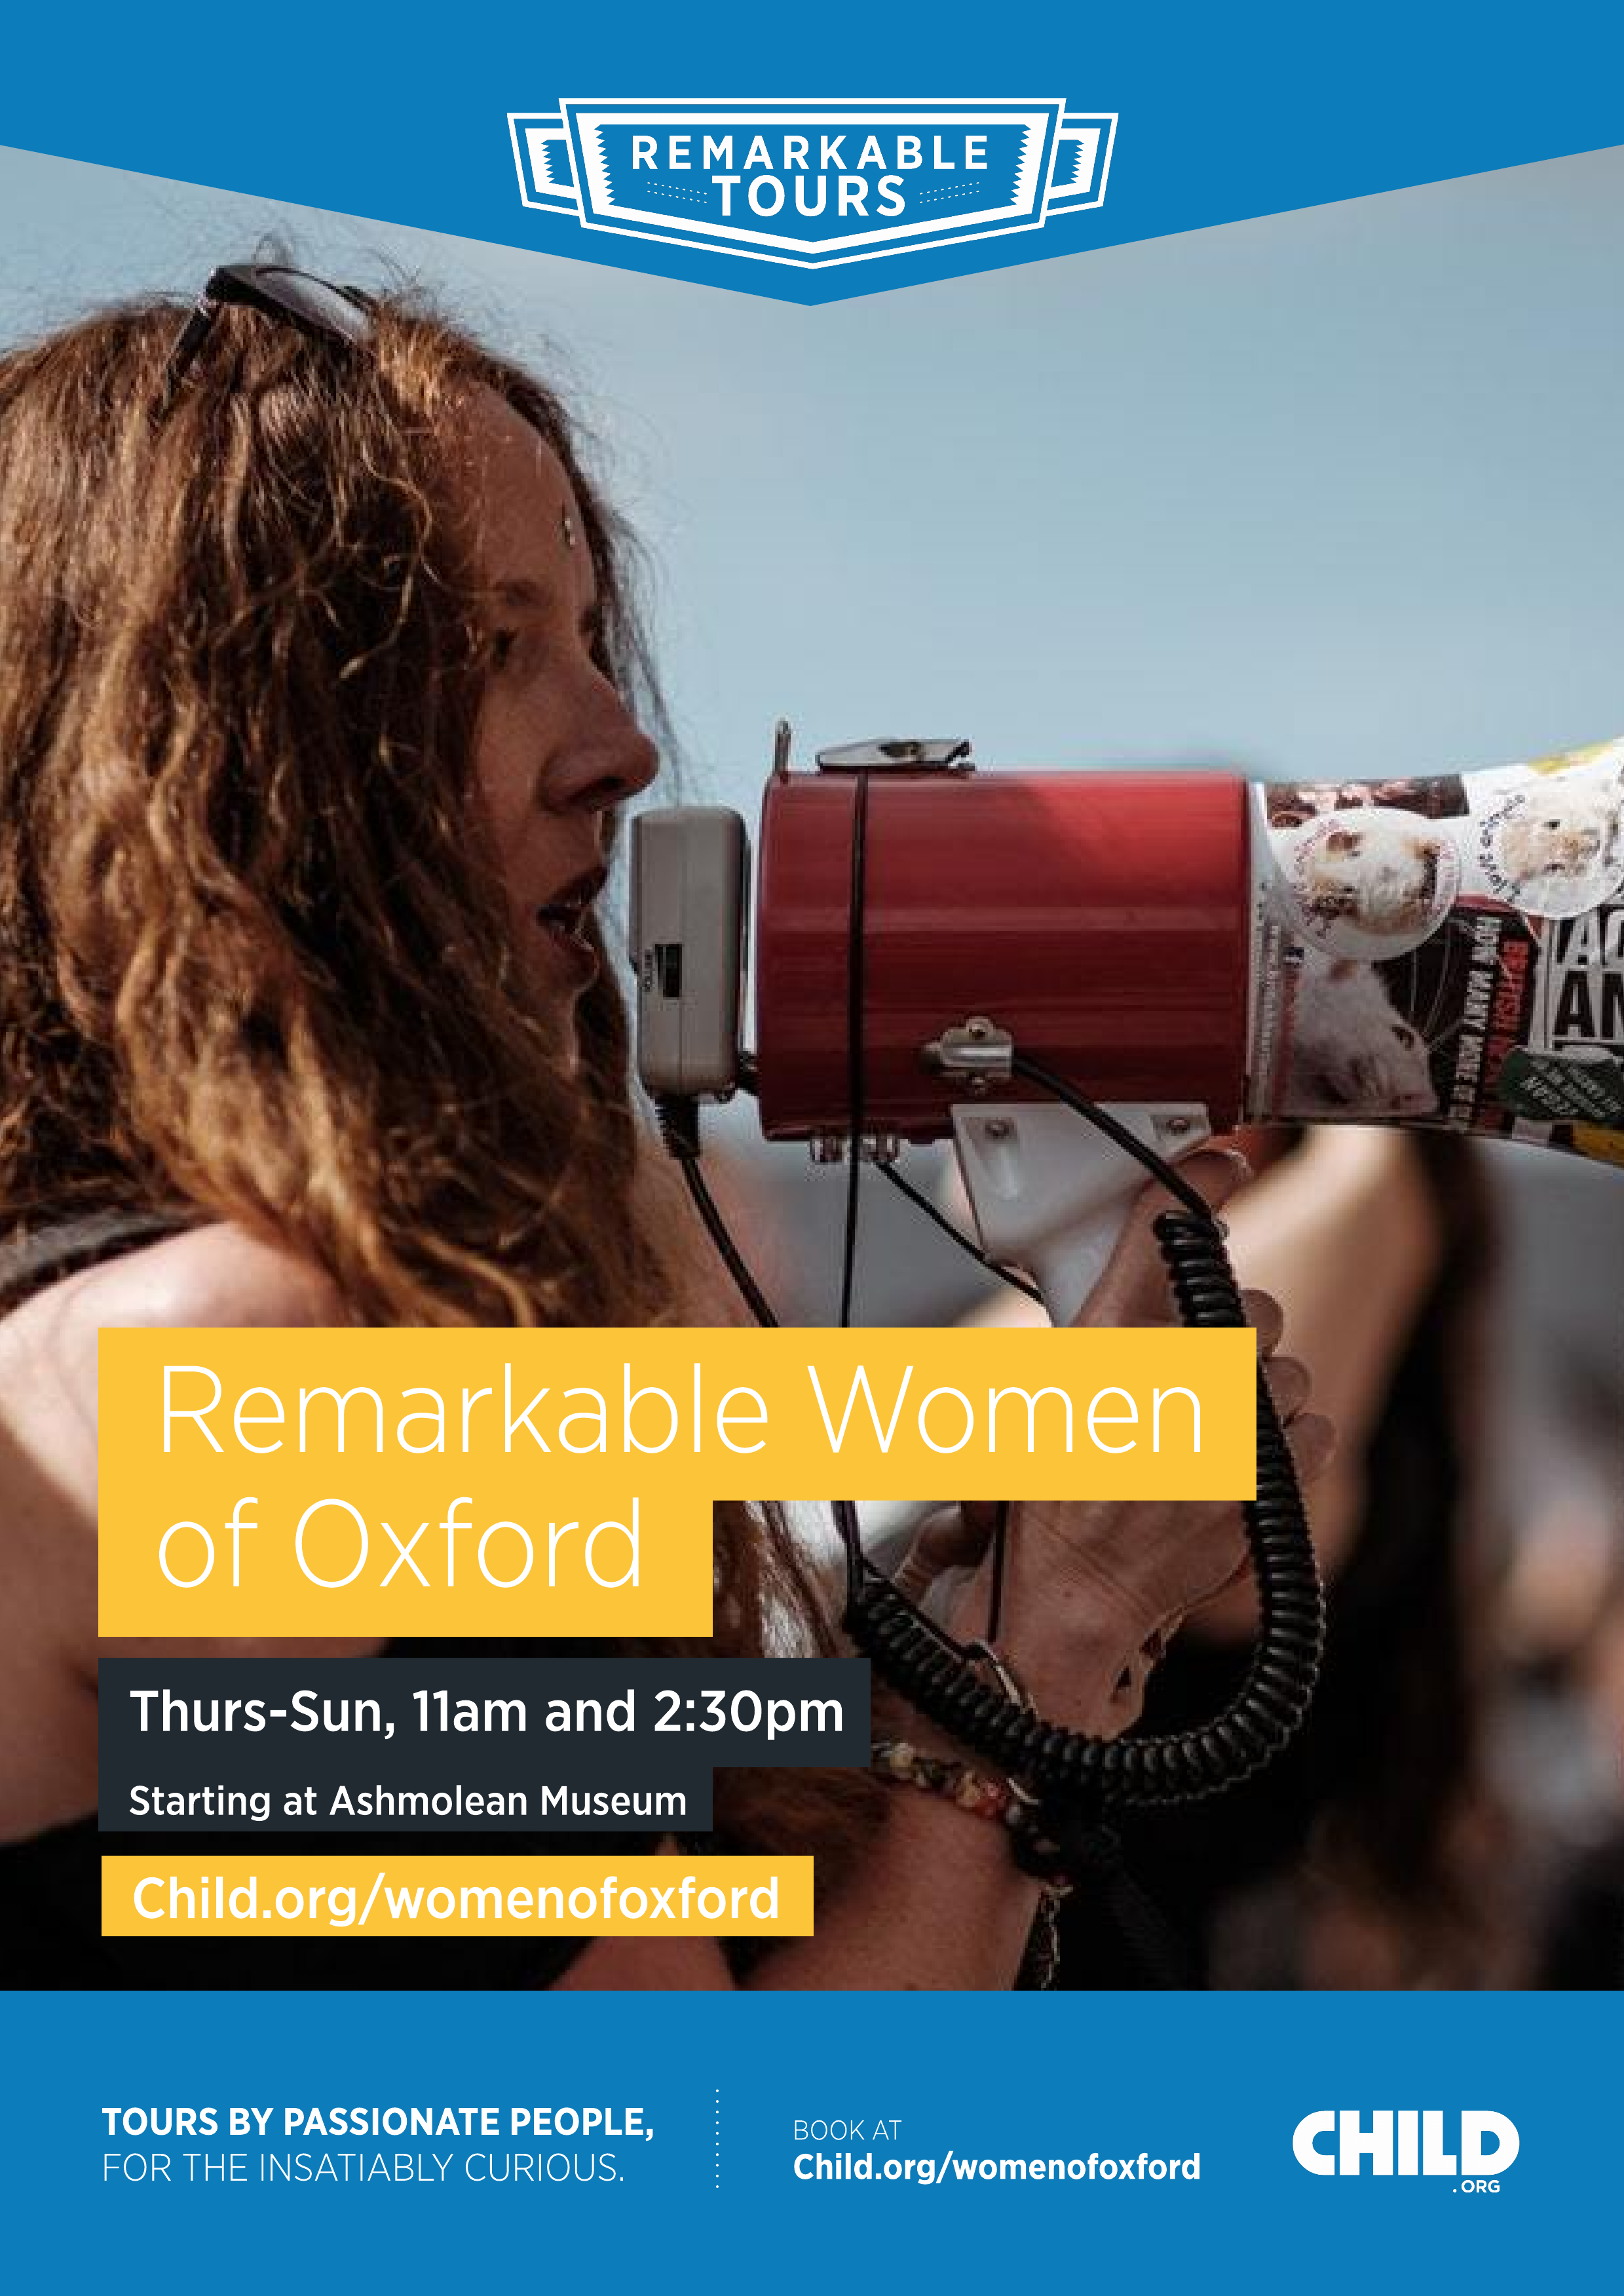 Remarkable Tours - The Remarkable Women of Oxford